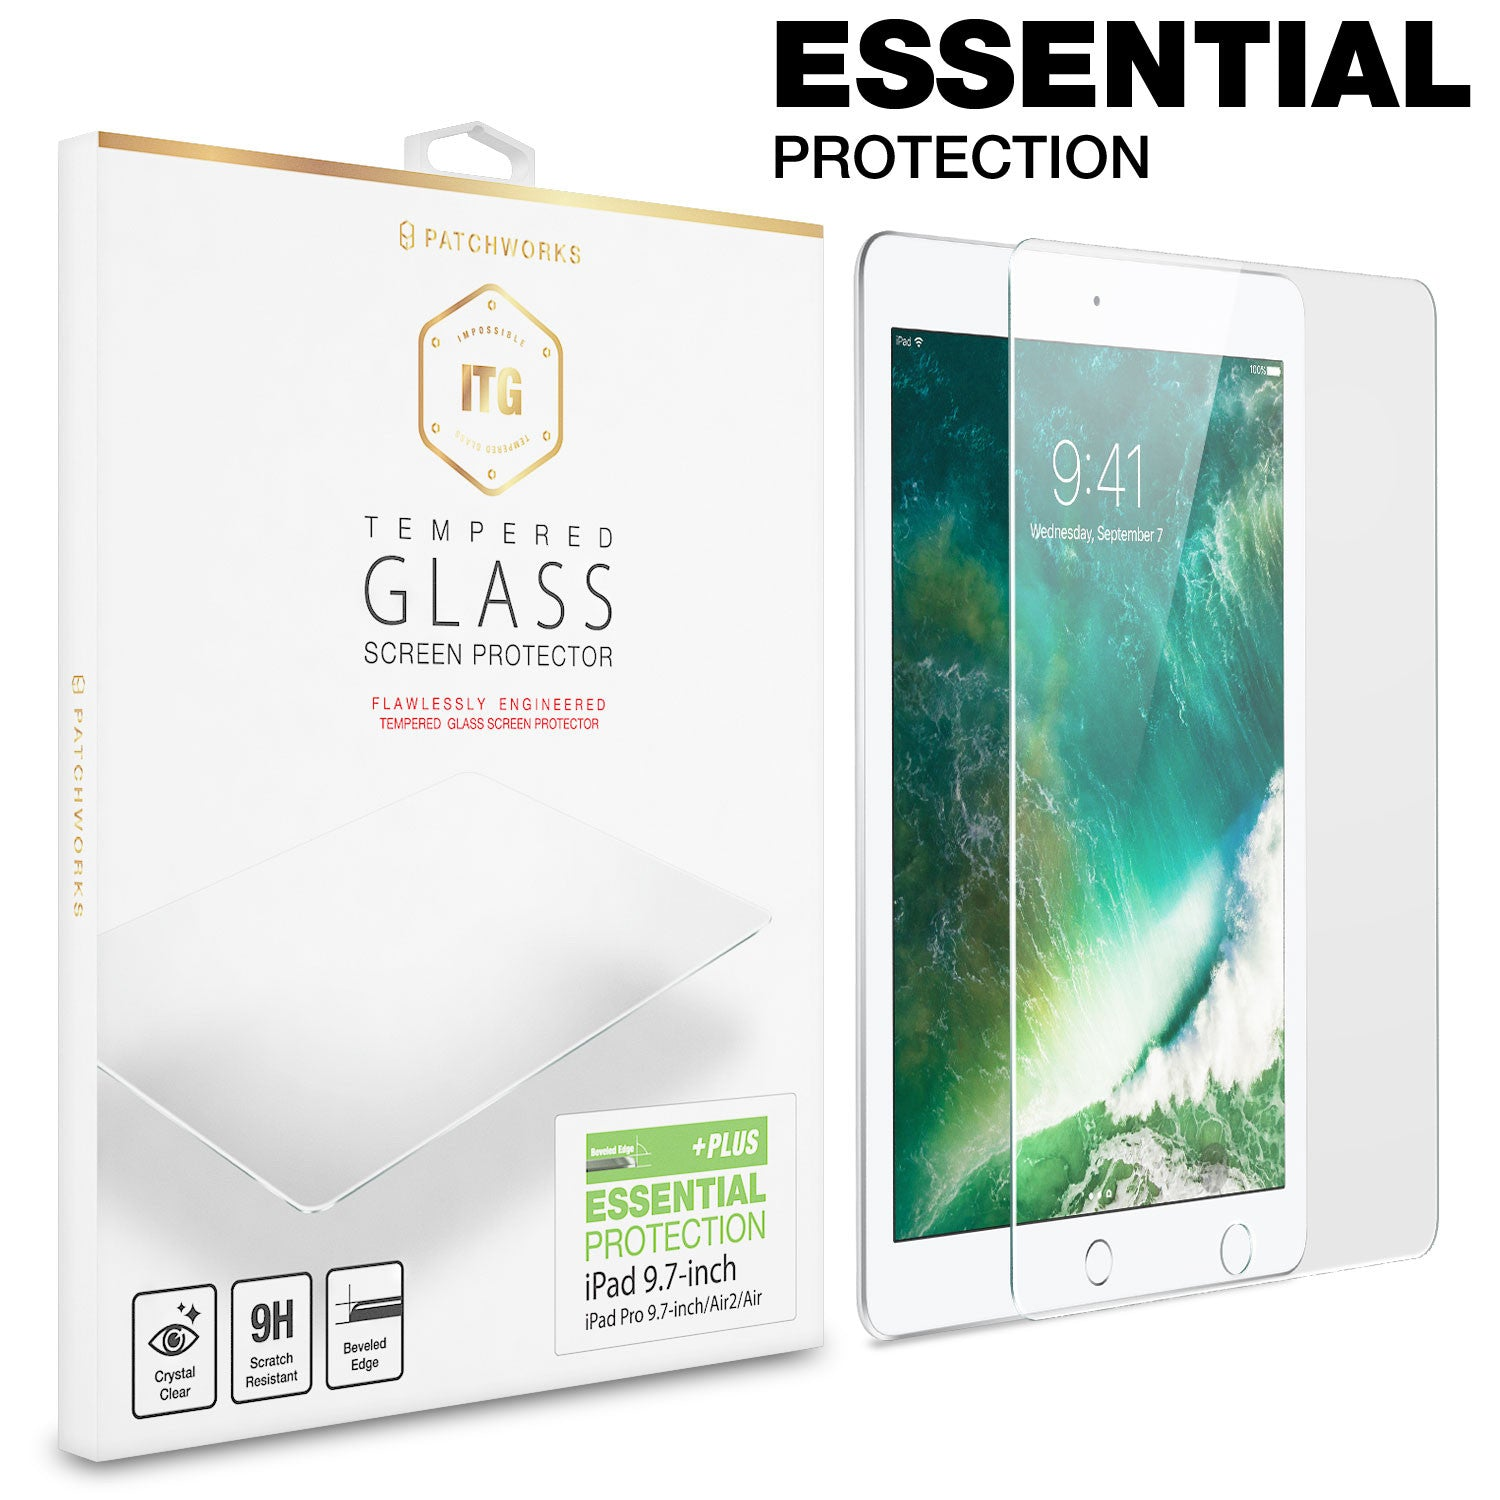 IPAD PRO 9.7-INCH Tempered GLASS SCREEN PROTECTOR - ITG PLUS